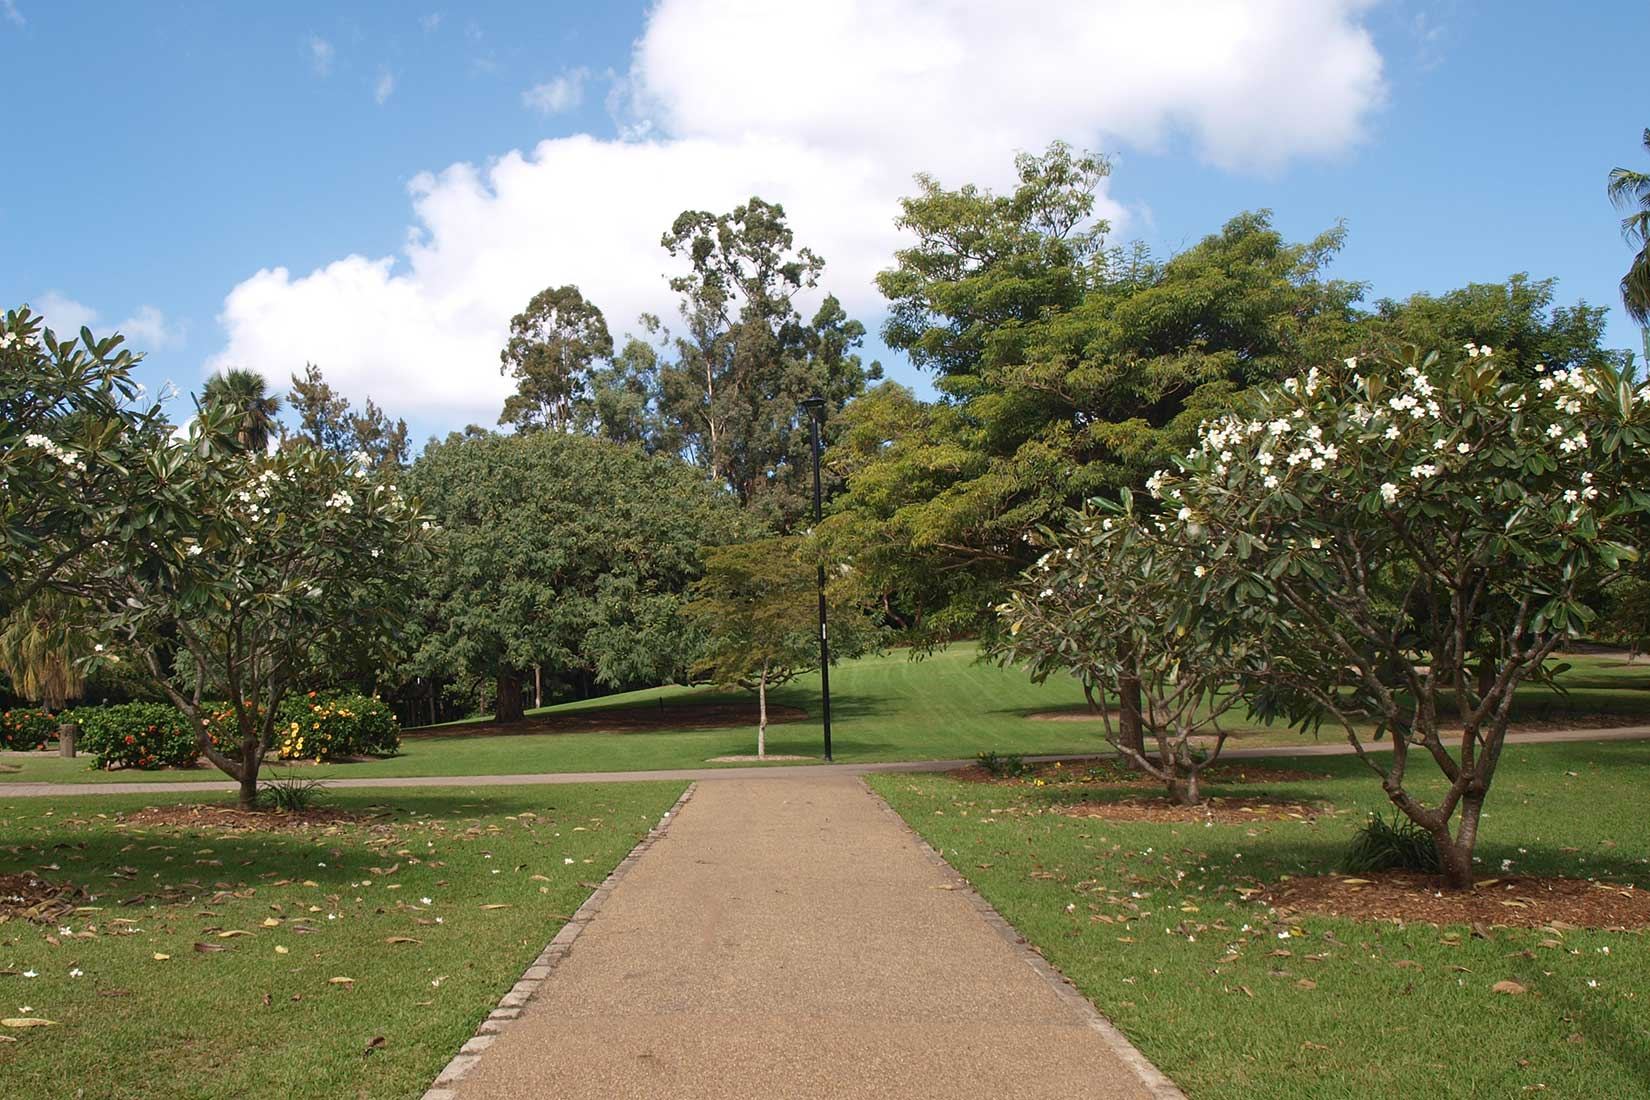 Brisbane City Botanical Gardens